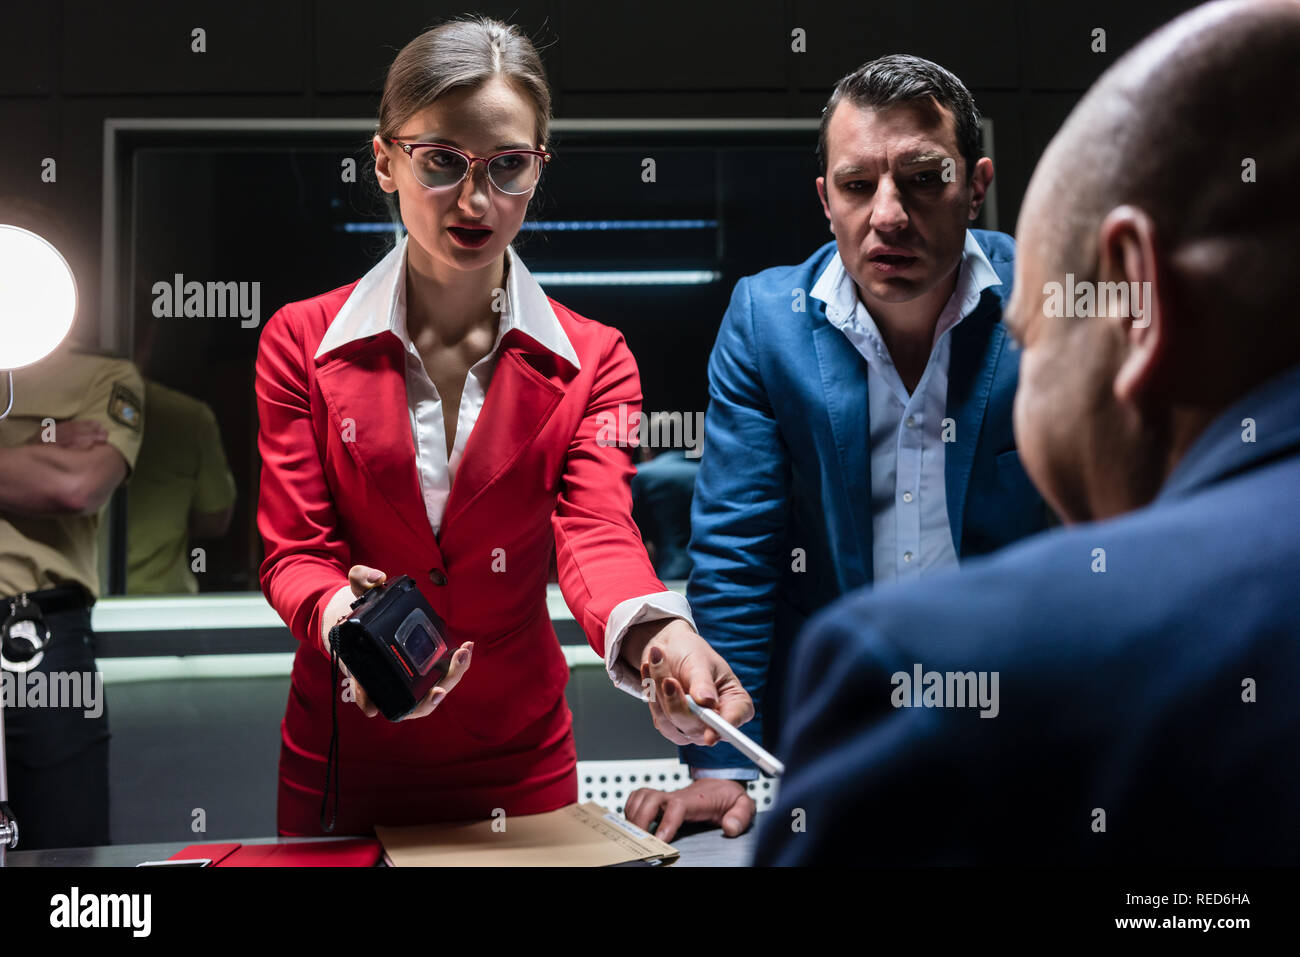 Two persuasive investigators trying to obtain a confession - Stock Image